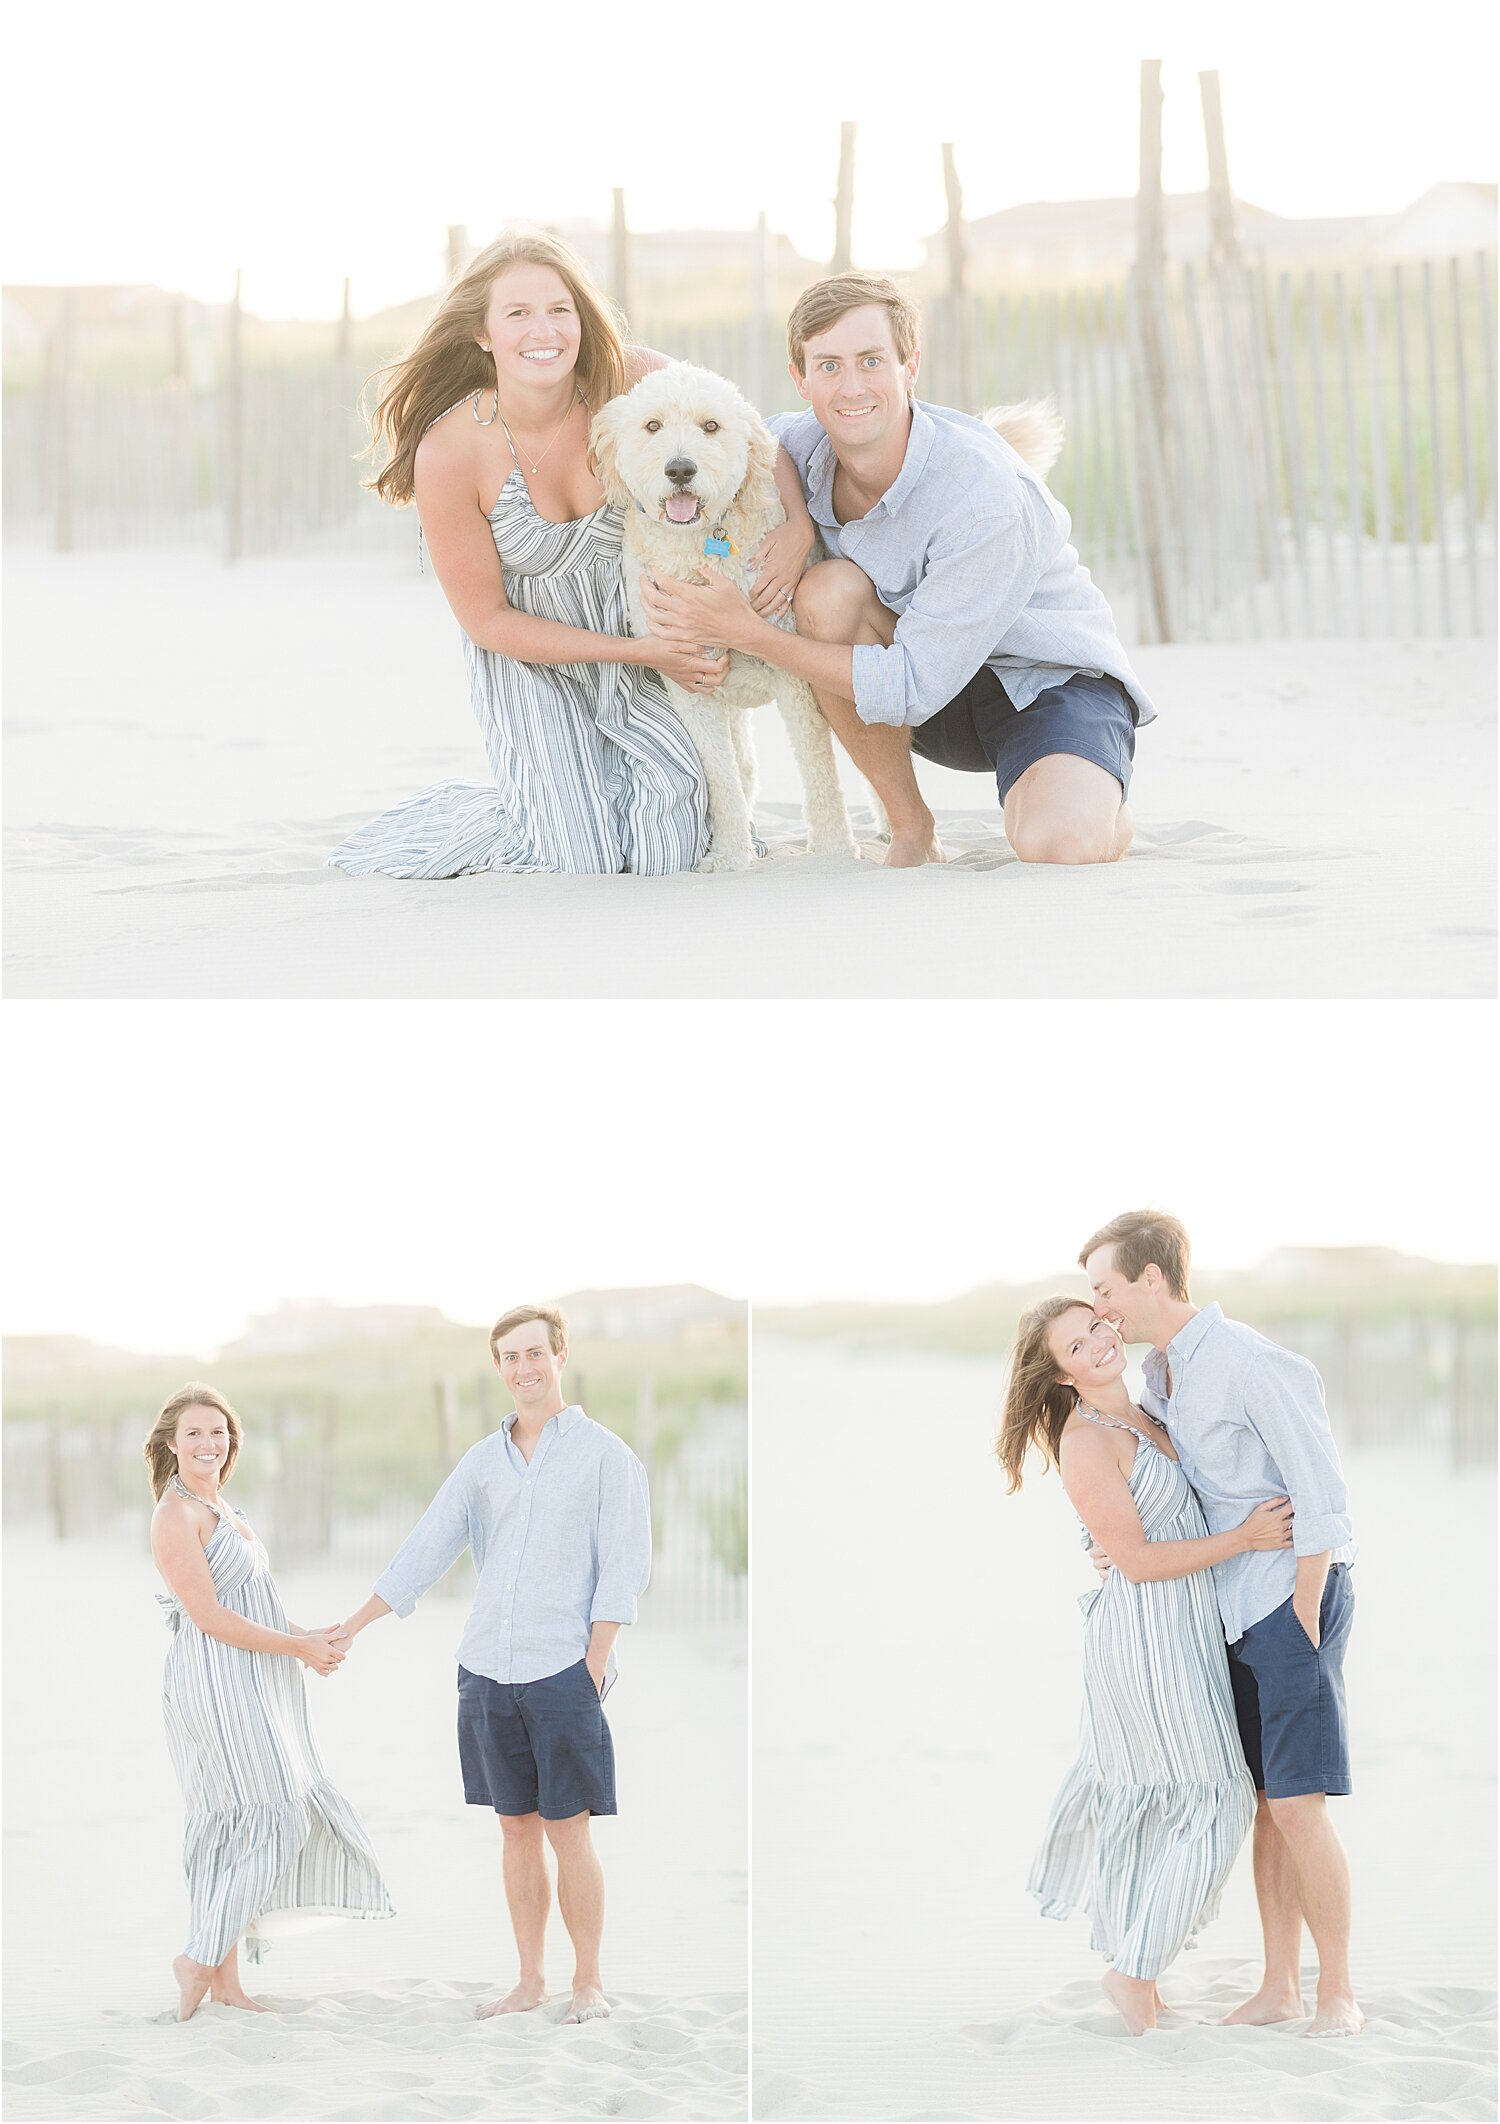 engagement photos in beach haven nj with a dog